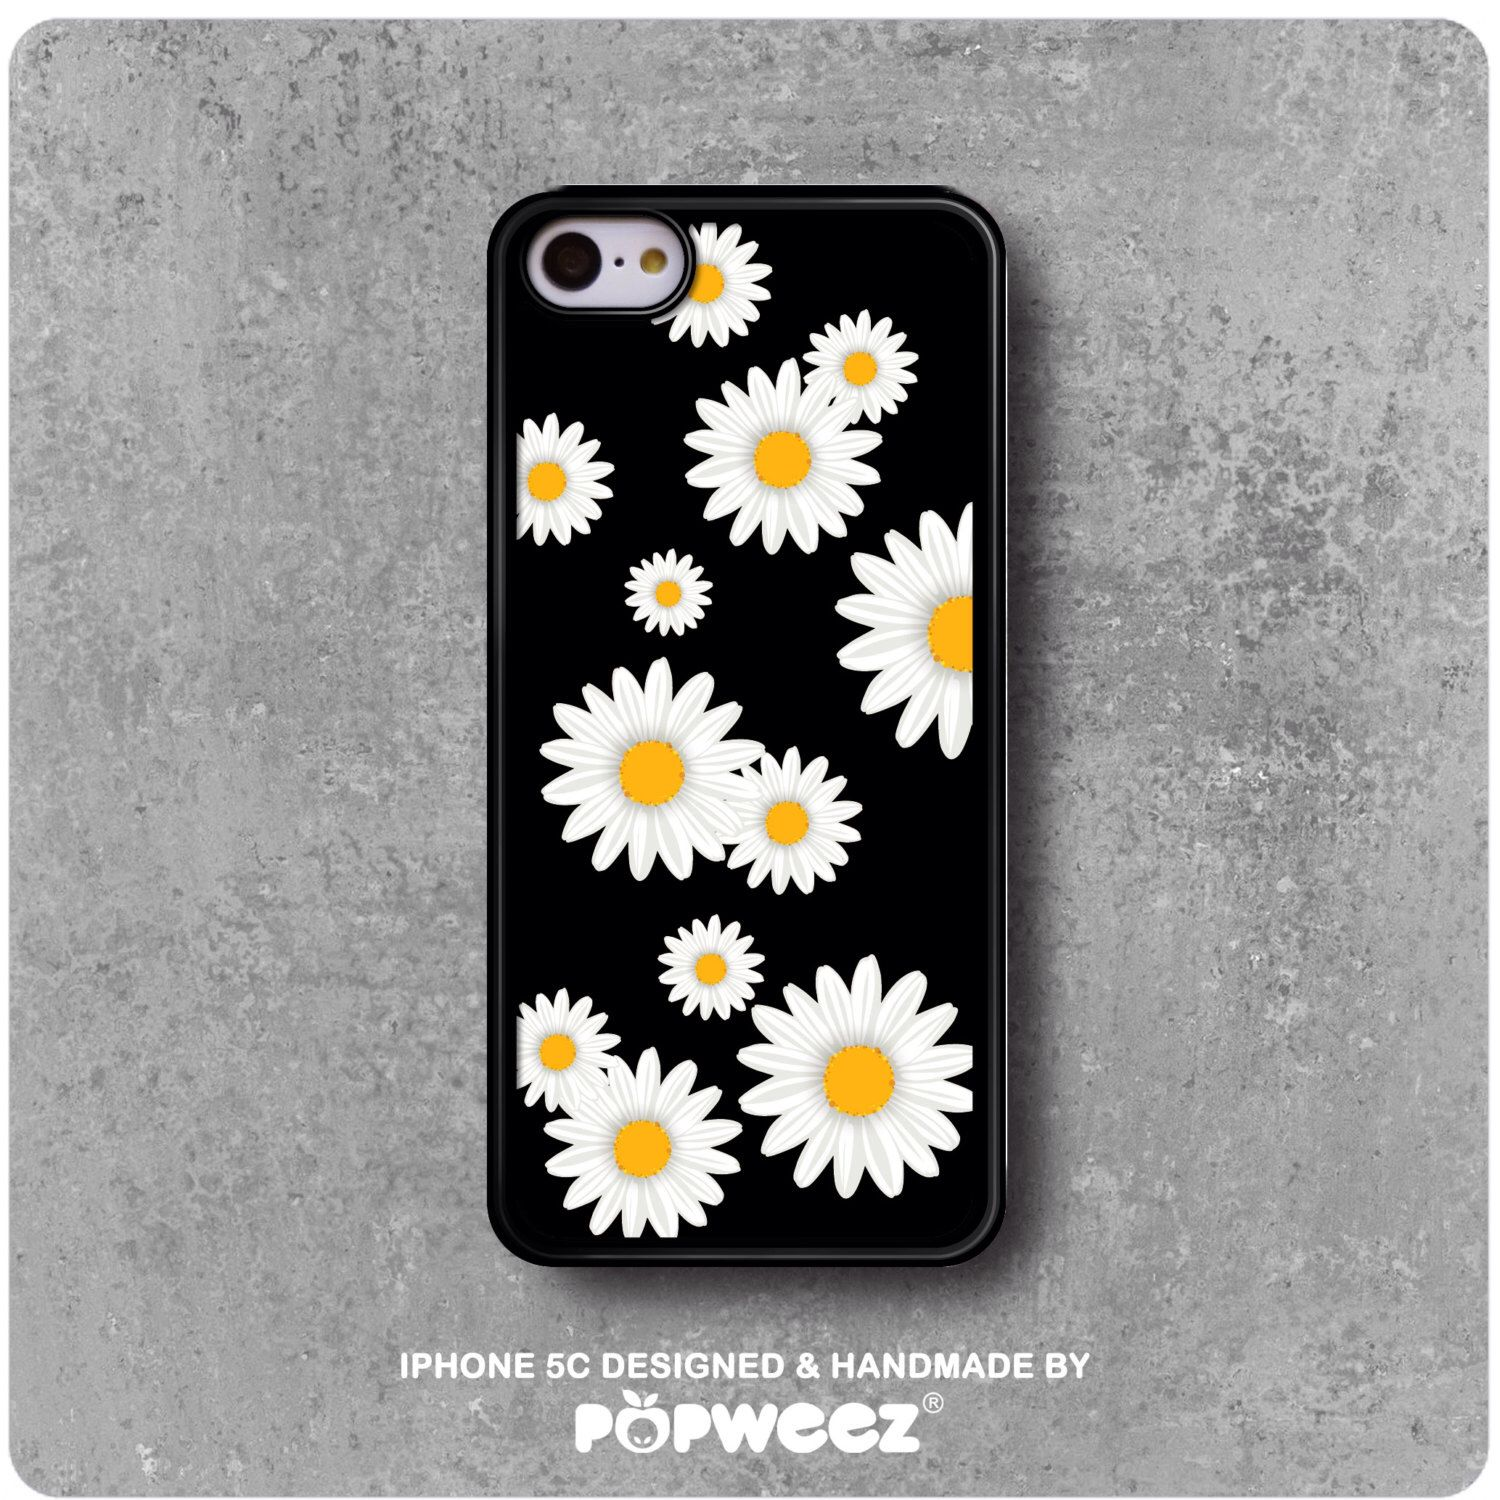 iPhone 5C Case Flowers Daisies + Free Shipping by POPWEEZ on Etsy https://www.etsy.com/listing/191137735/iphone-5c-case-flowers-daisies-free